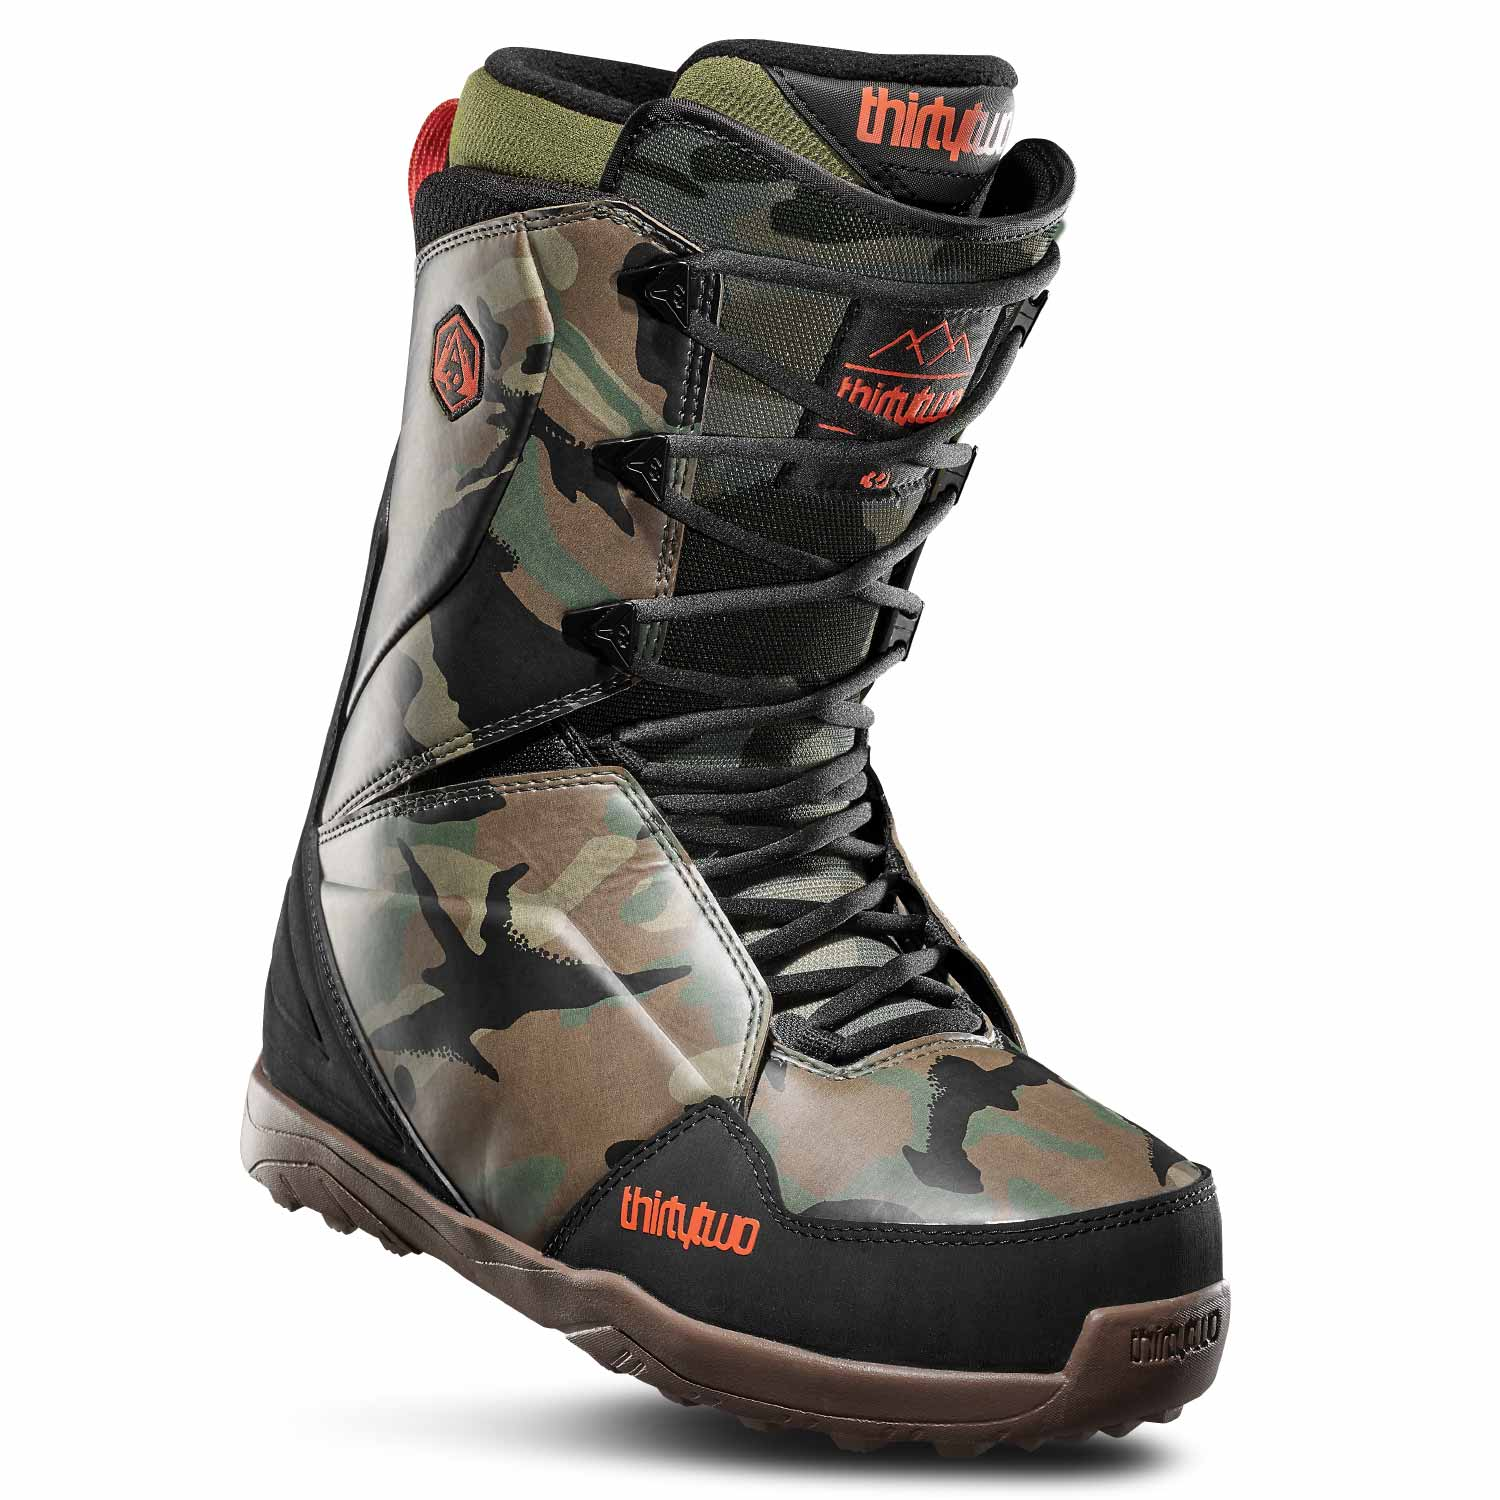 ThirtyTwo Lashed Snowboard Boot Camo 2020